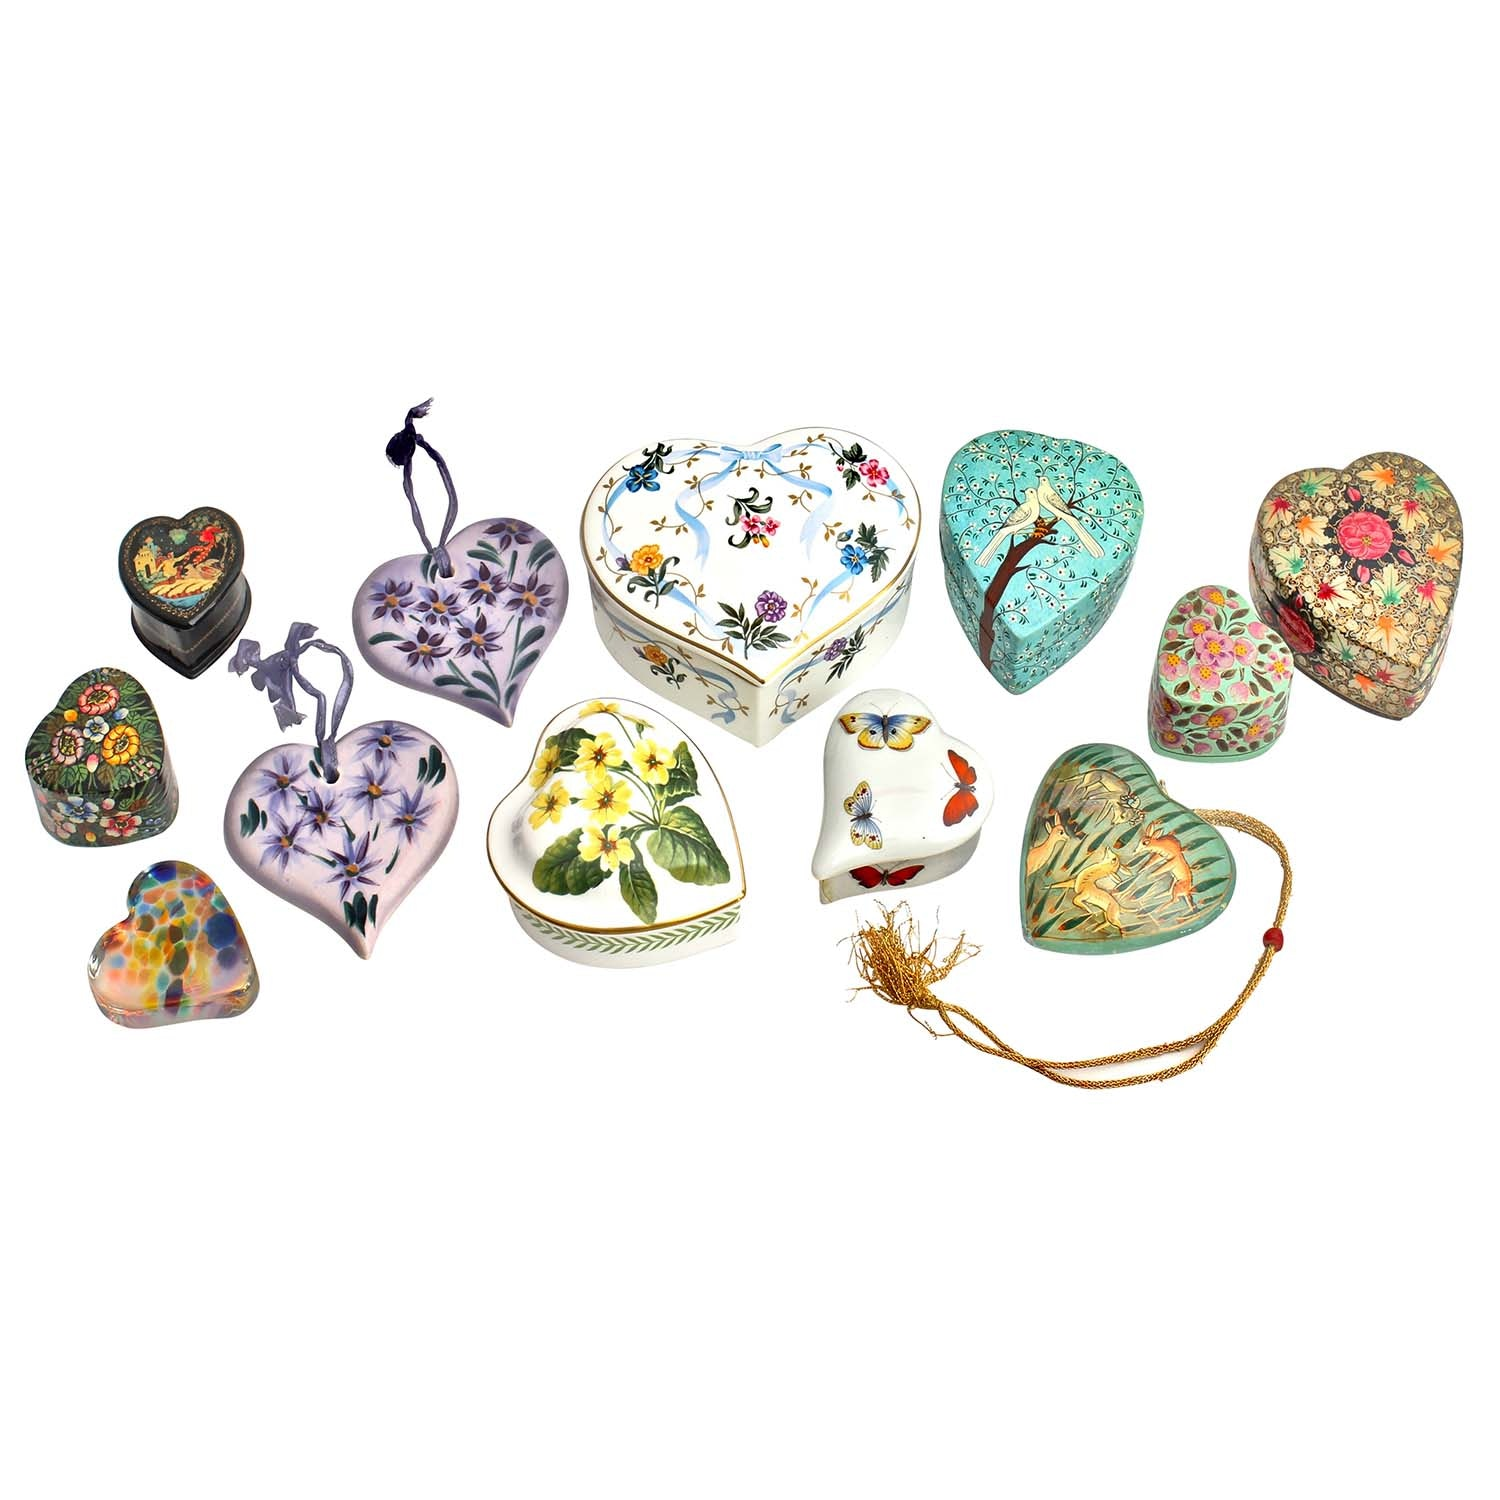 Heart-Shaped Trinket Boxes Including Limoges, Spode, and Hand-Painted Lacquer